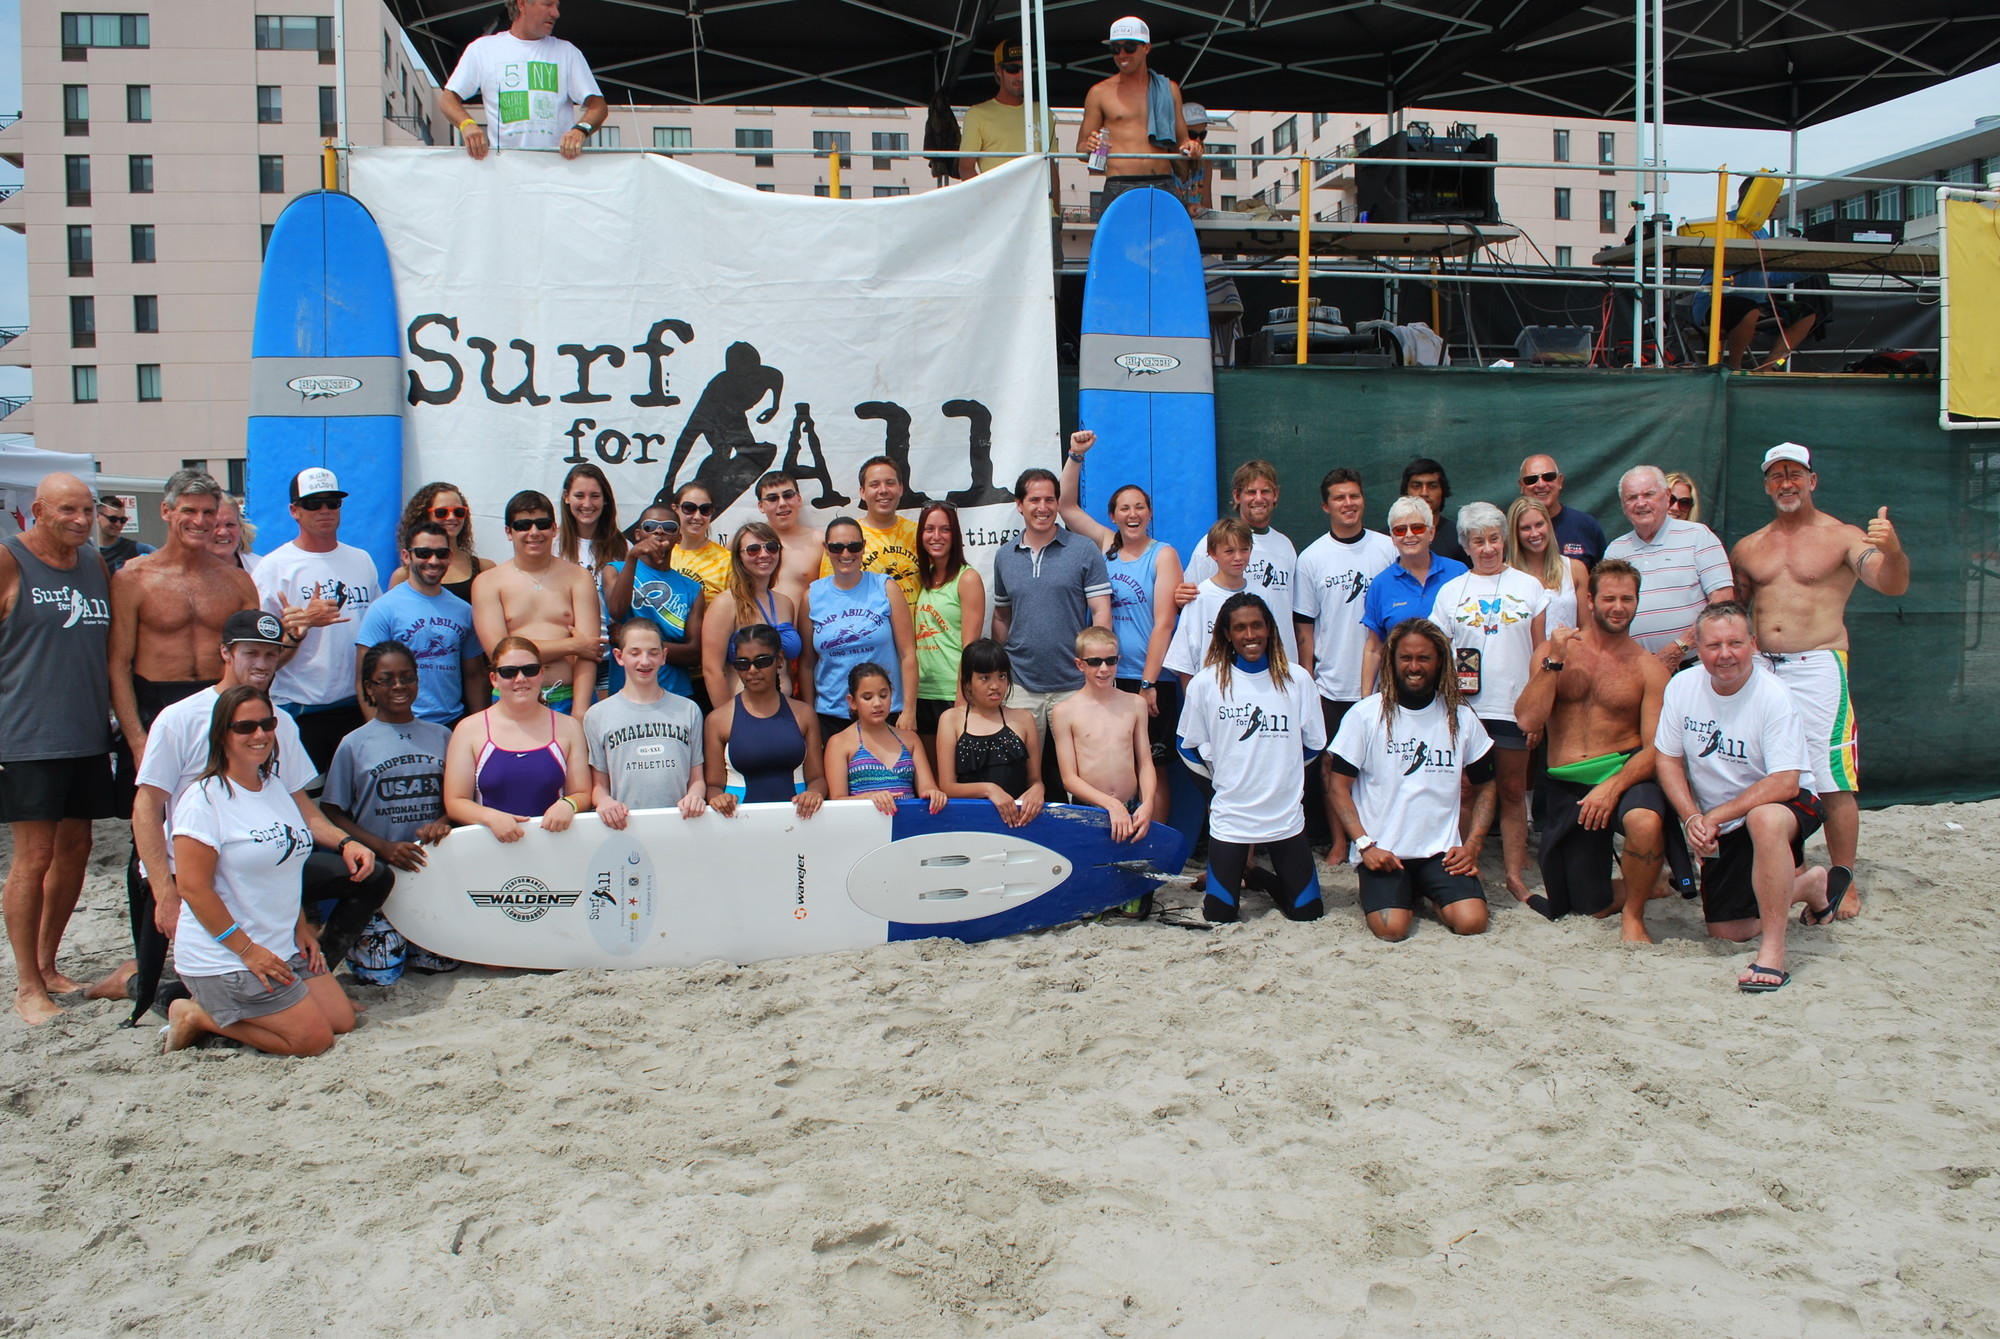 Kids from Camp Abilities joined with instructors from Surf for All at the July 16 event.